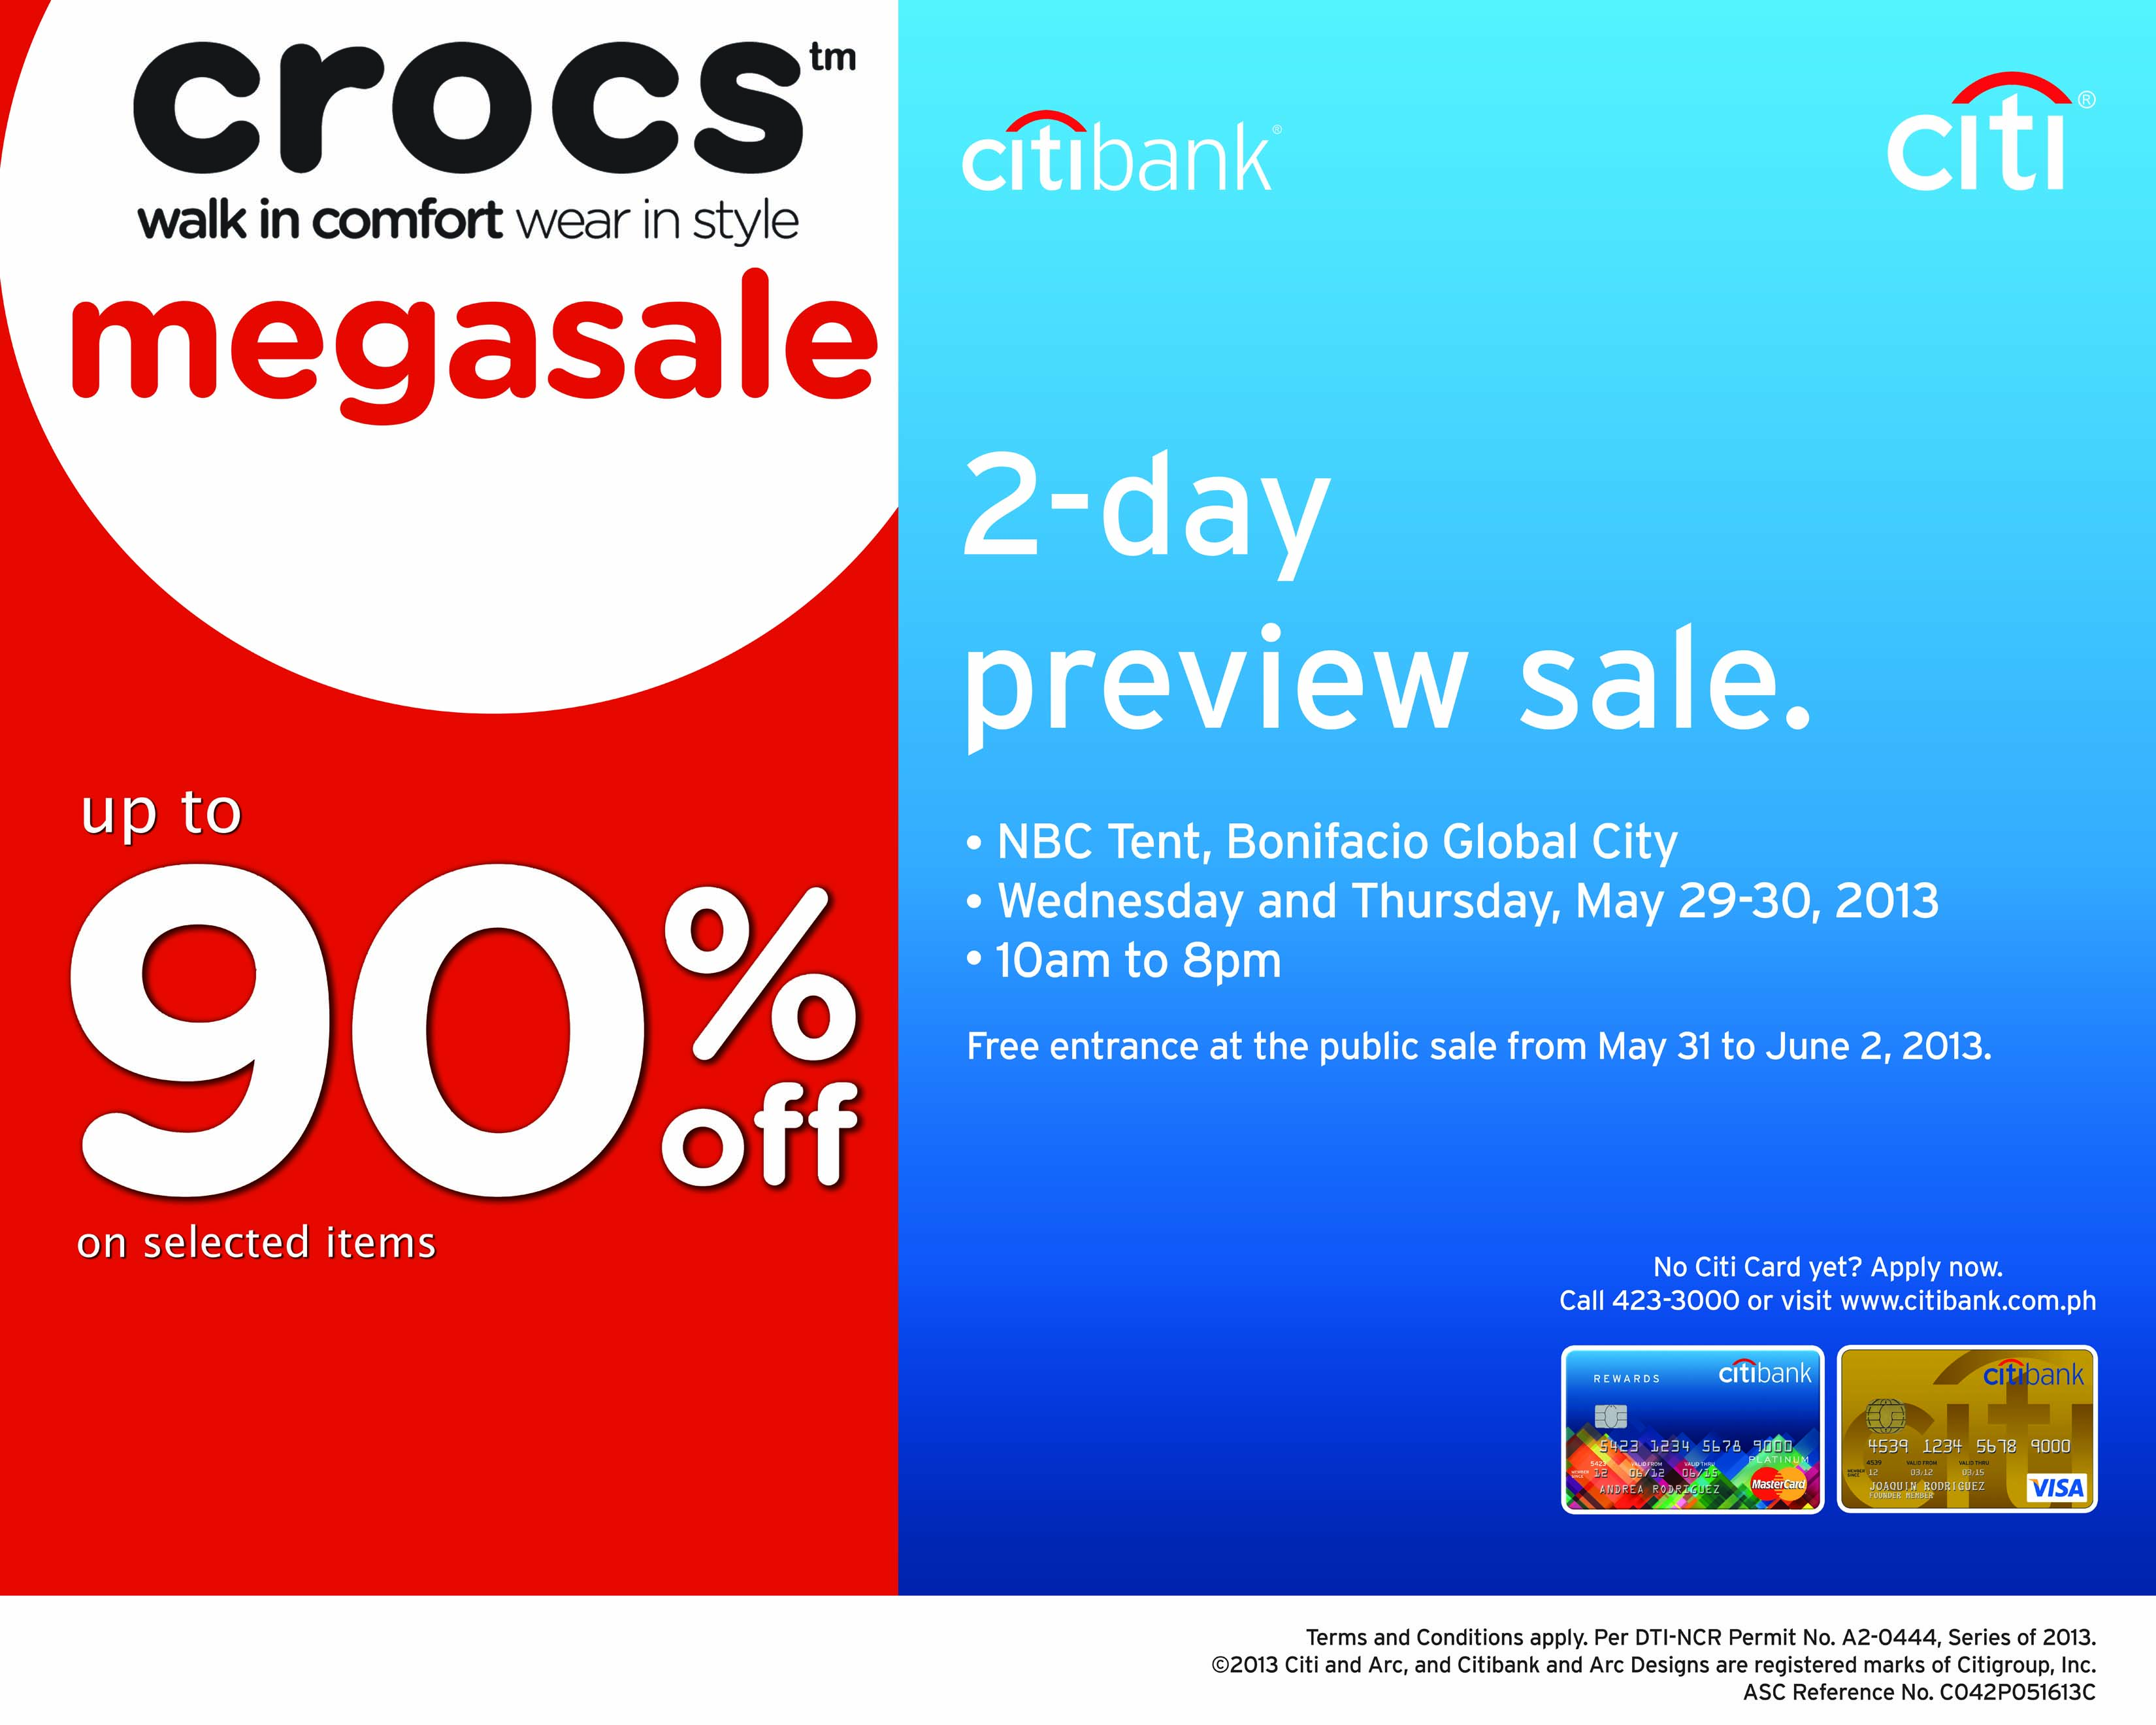 Citibank Promo: Exclusive 2-Day Preview Sale at Crocs Megasale @ NBC Tent May 2013